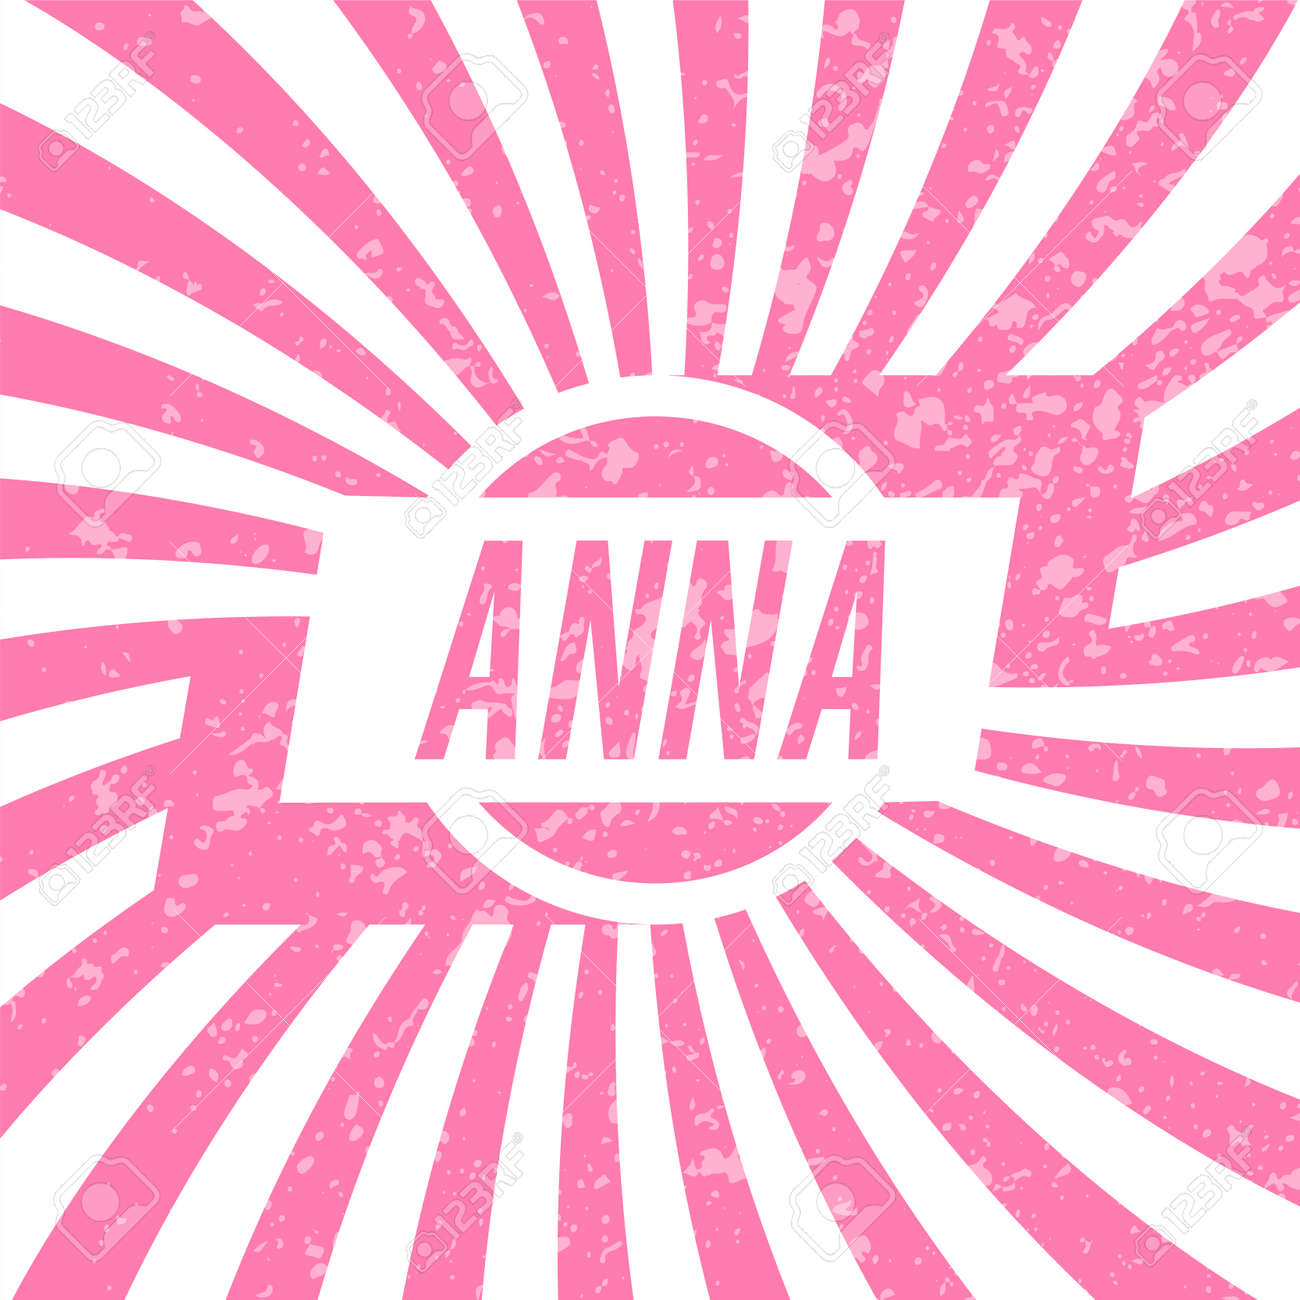 Anna Name Images